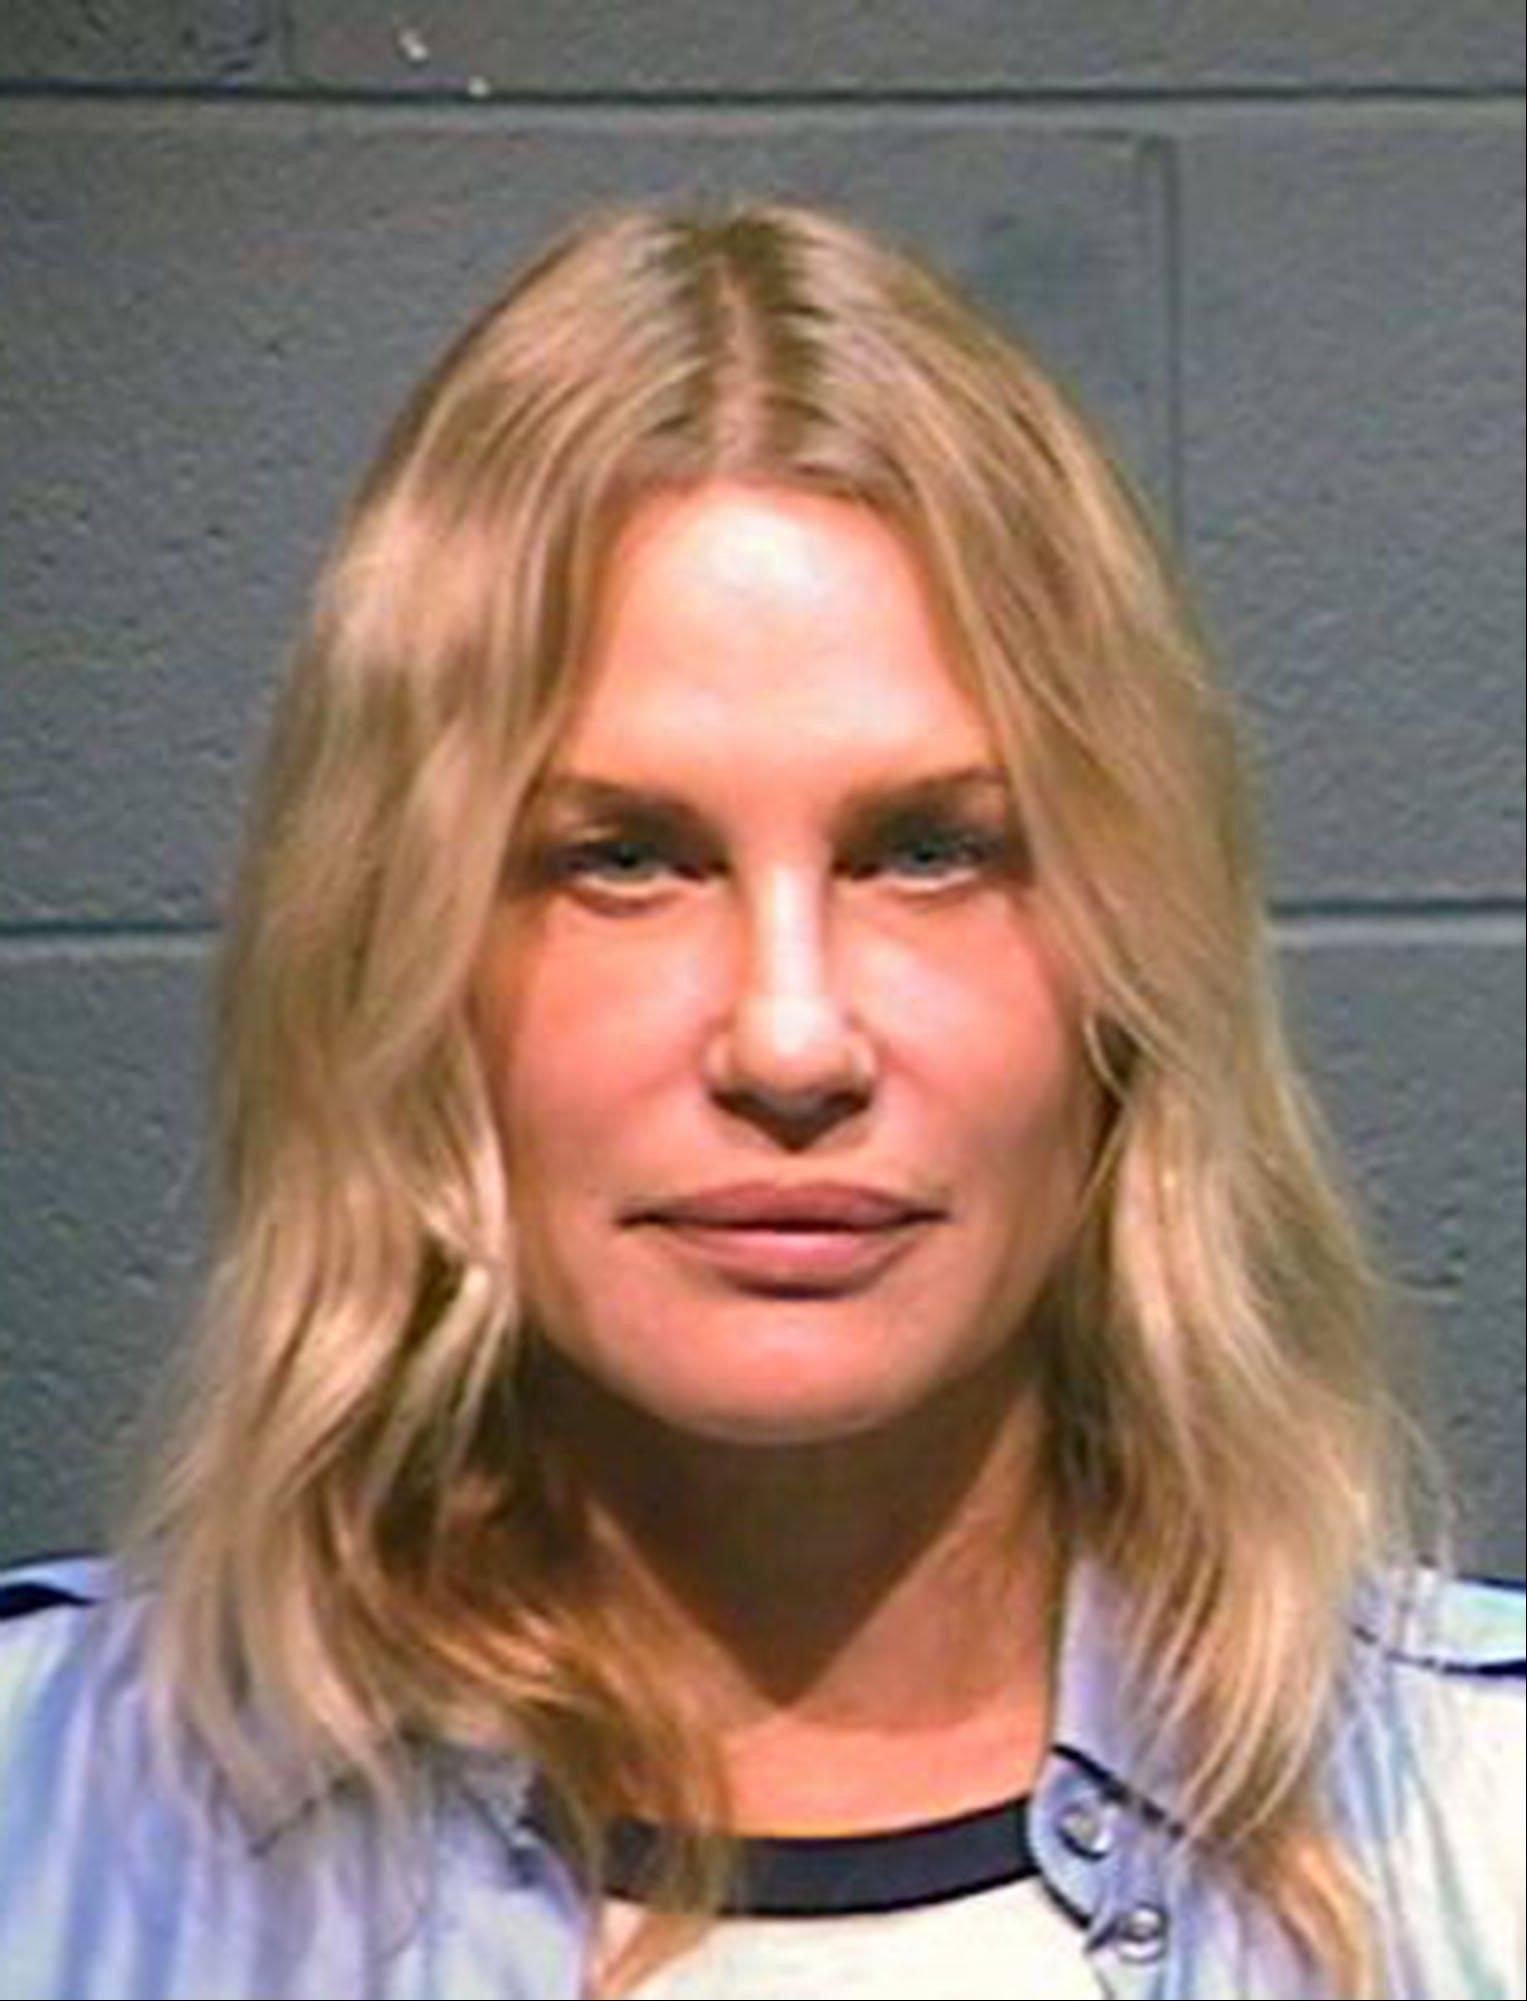 Daryl Hannah was arrested in northeast Texas along with a 78-year-old northeast Texas landowner while protesting construction of a pipeline designed to bring crude oil from Canada to Gulf Coast refineries.